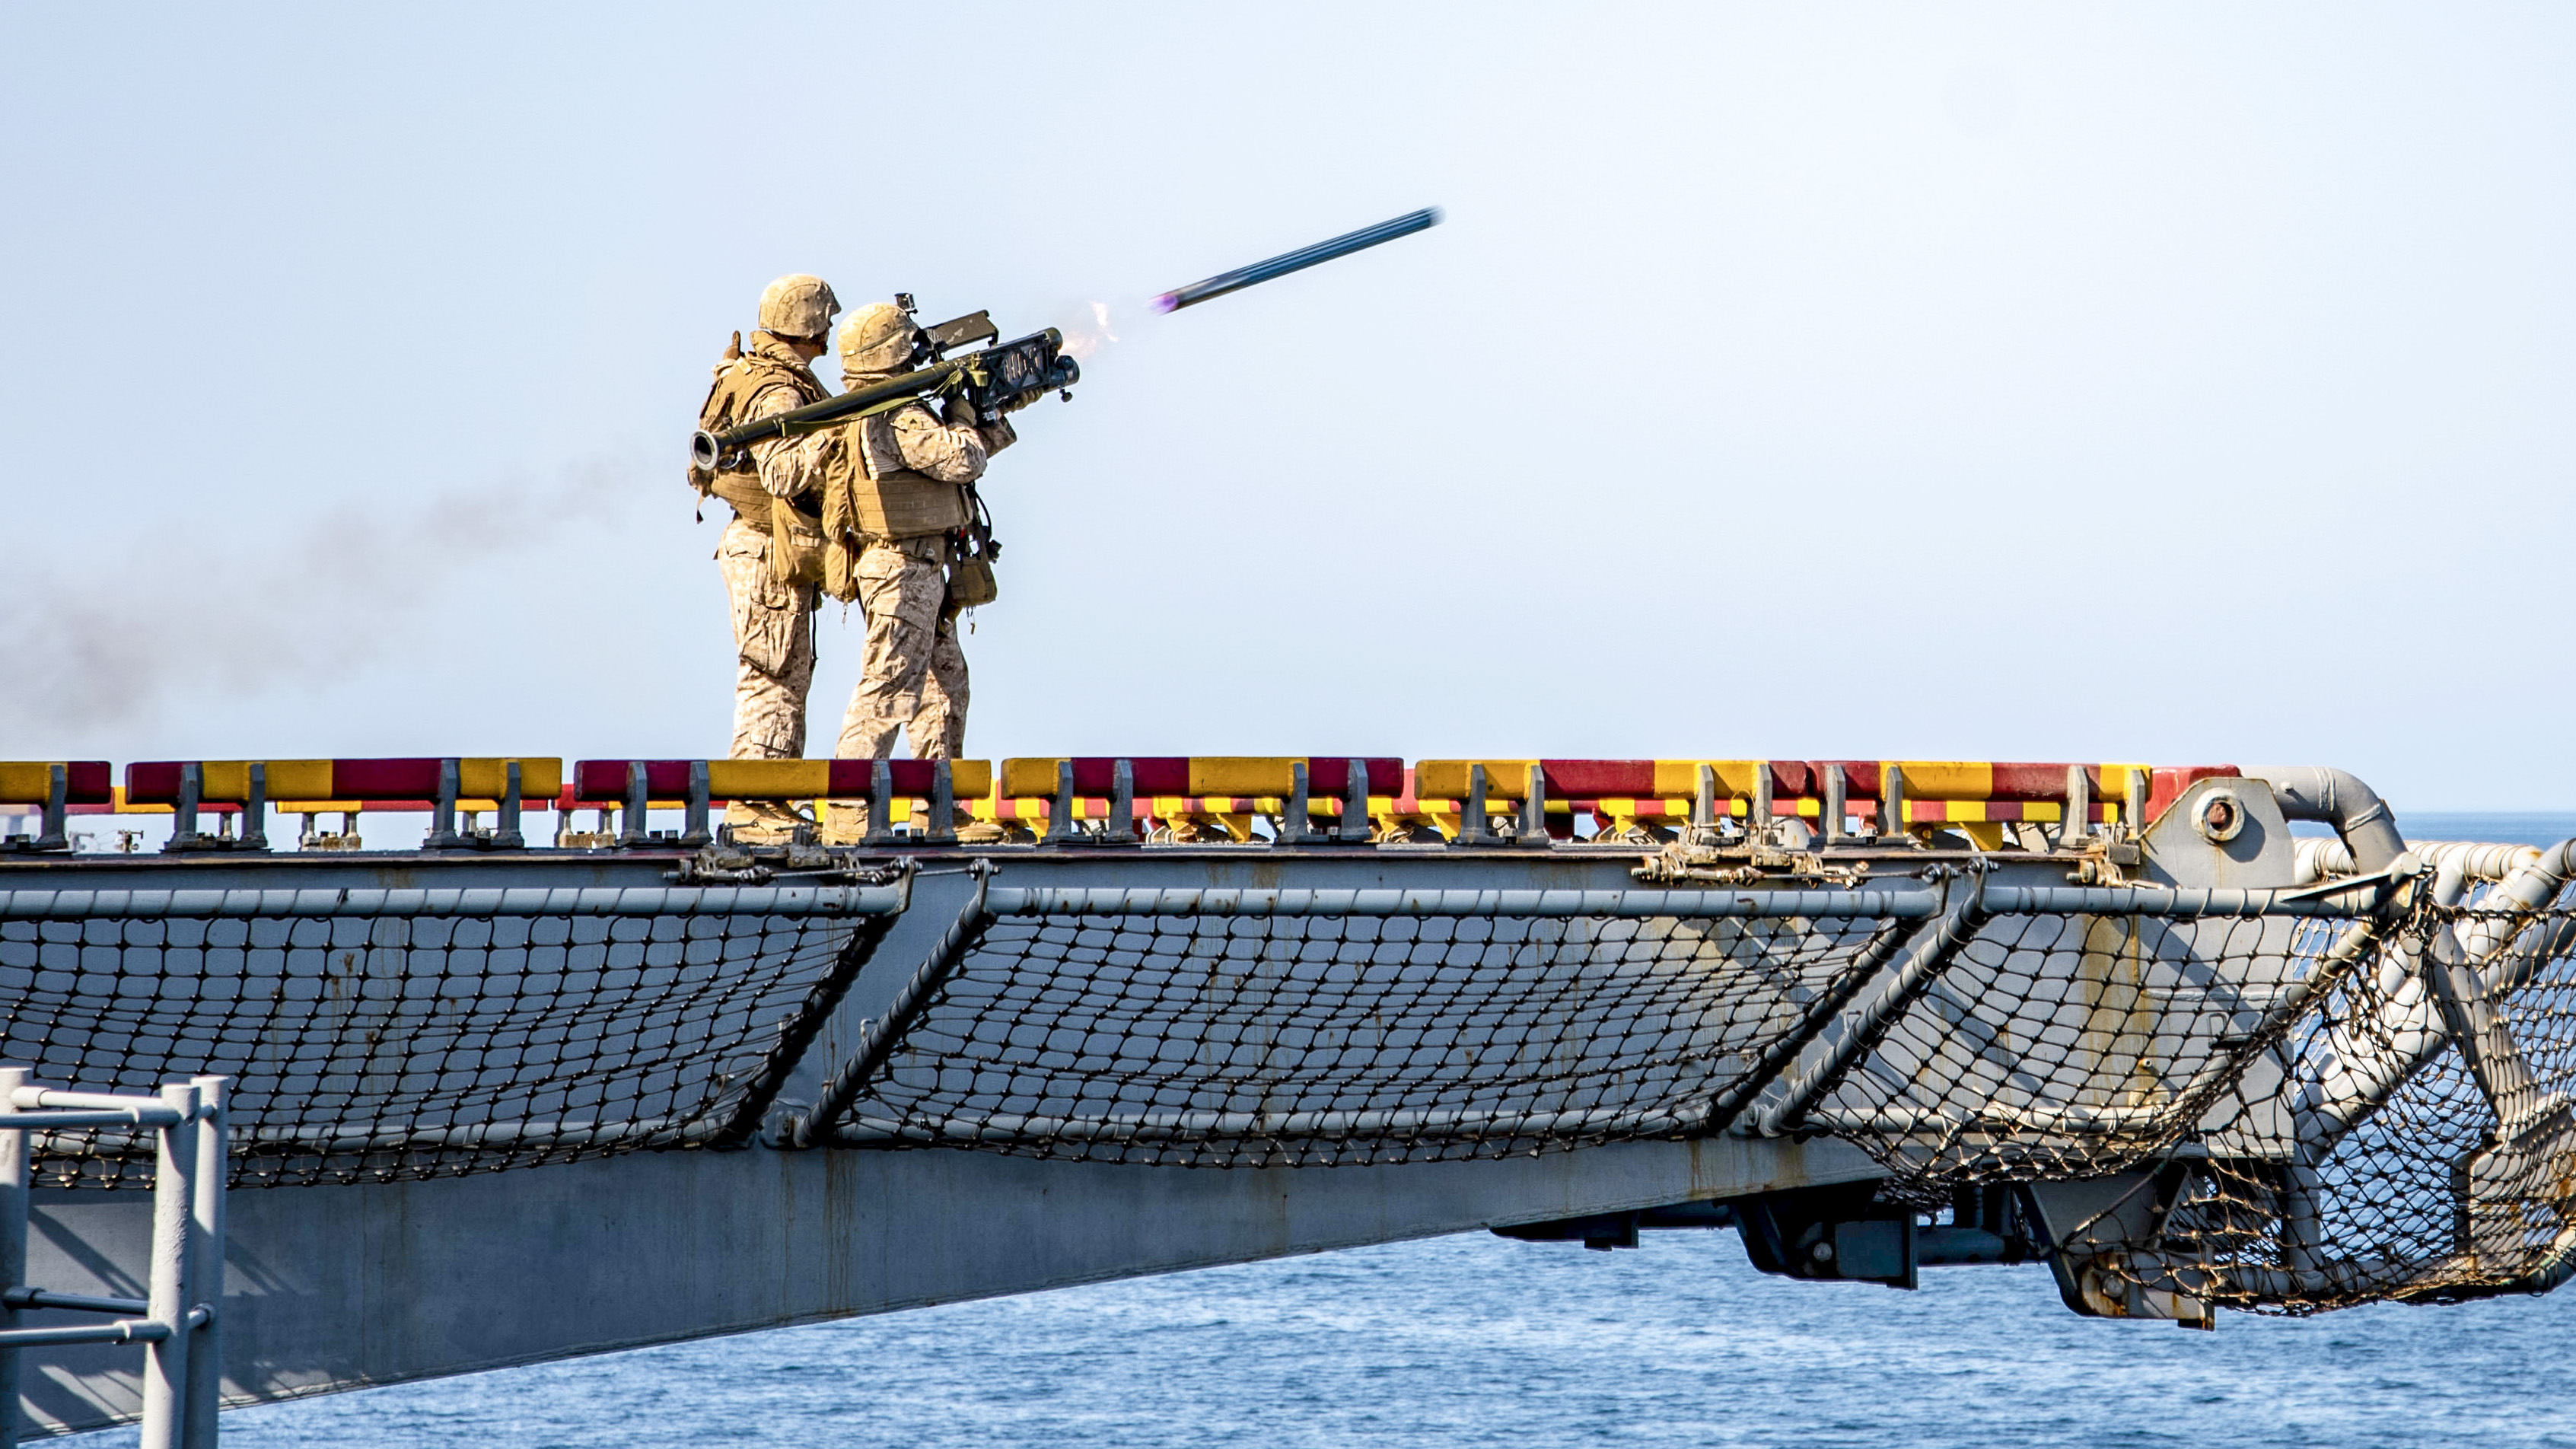 Marine Corps Sgt. Jade Woodend, assigned to Battalion Landing Team 3/1, fires a FIM-92 Stinger from the flight deck of the Wasp-class amphibious assault ship USS Essex (LHD 2) during a scheduled deployment with the Essex Amphibious Ready Group (ARG) and 13th Marine Expeditionary Unit (MEU). (MC3 Jenna Dobson/Navy)